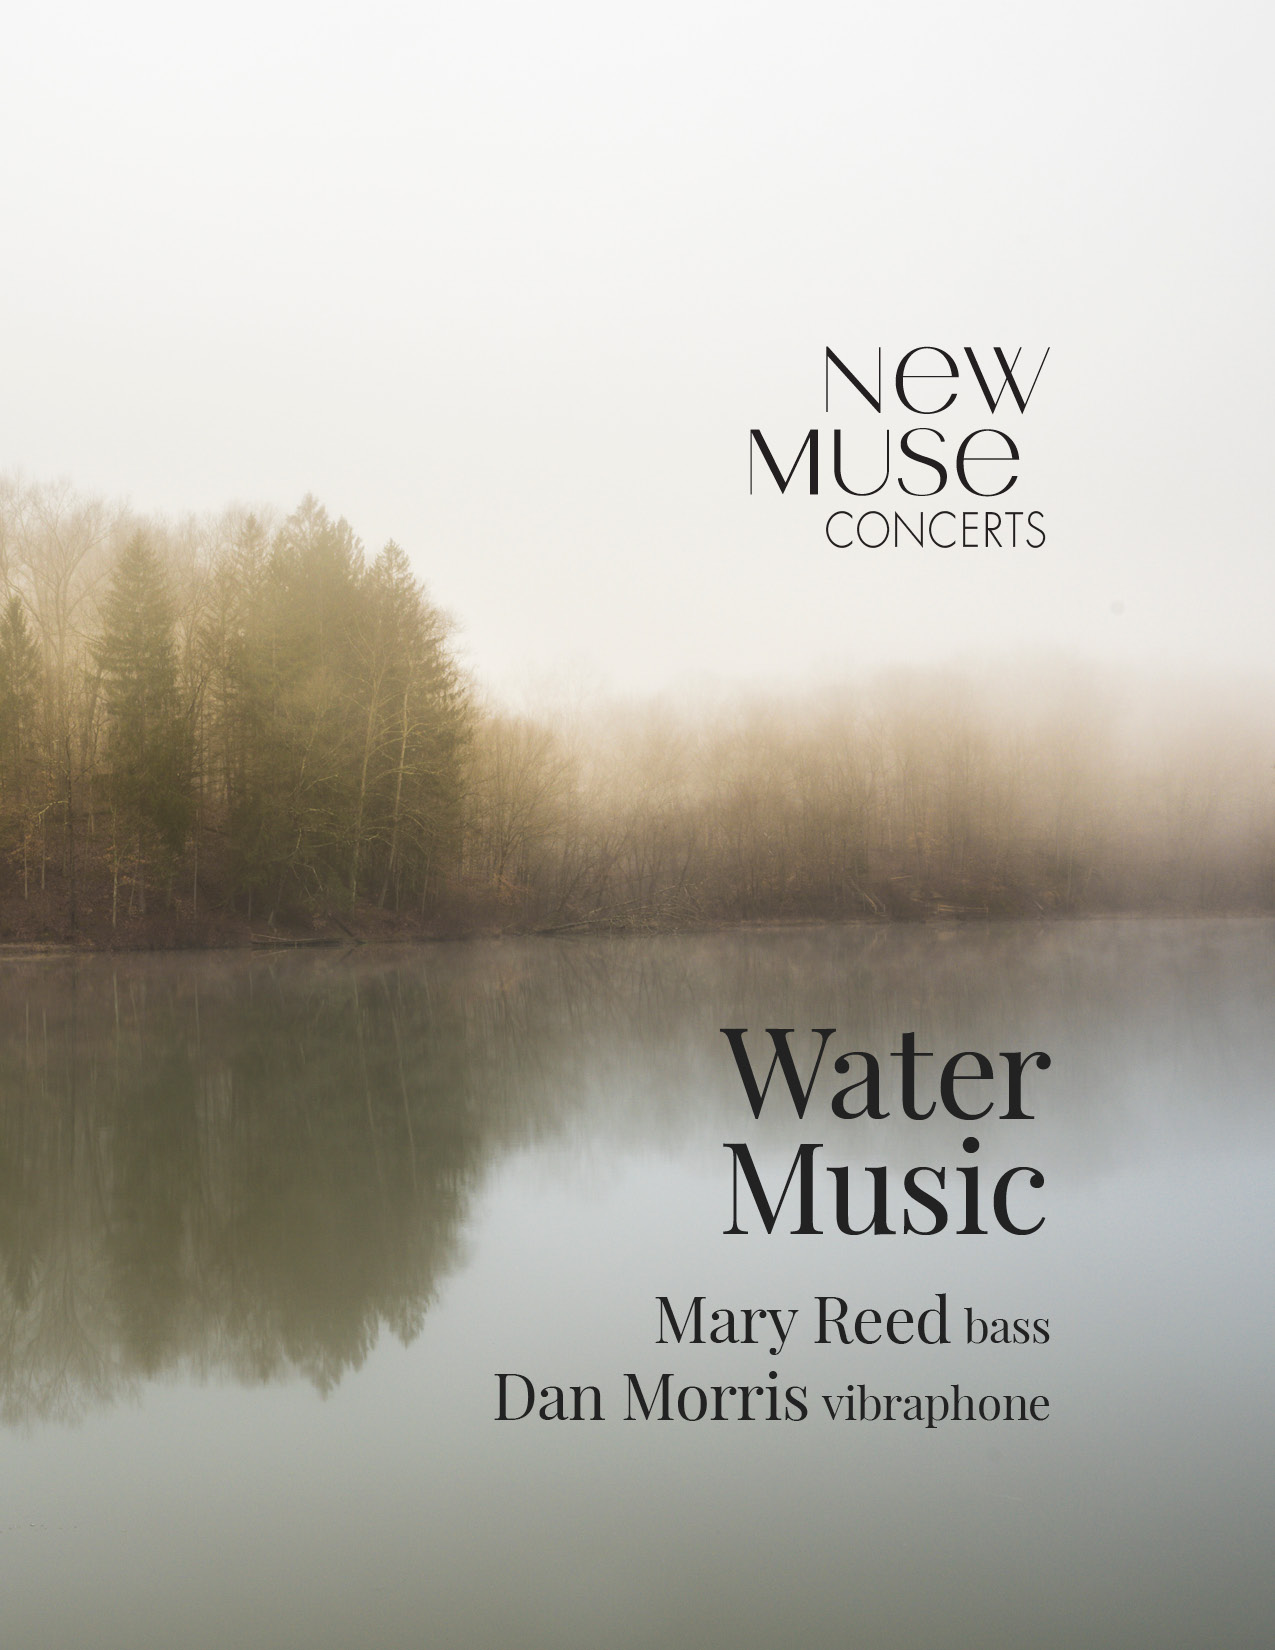 Water Music Poster